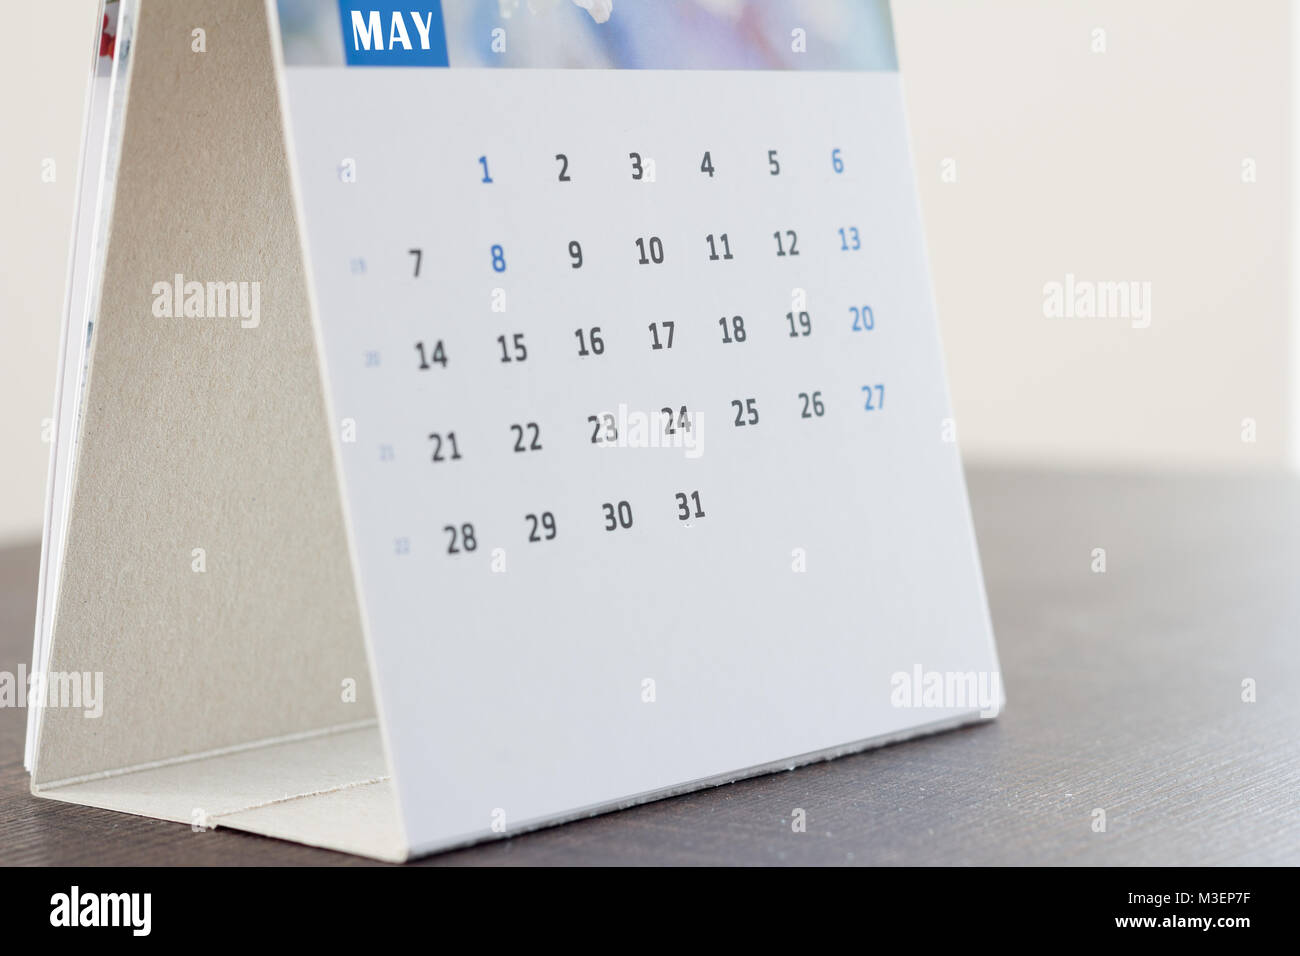 Calendrier de bureau vide Photo Stock